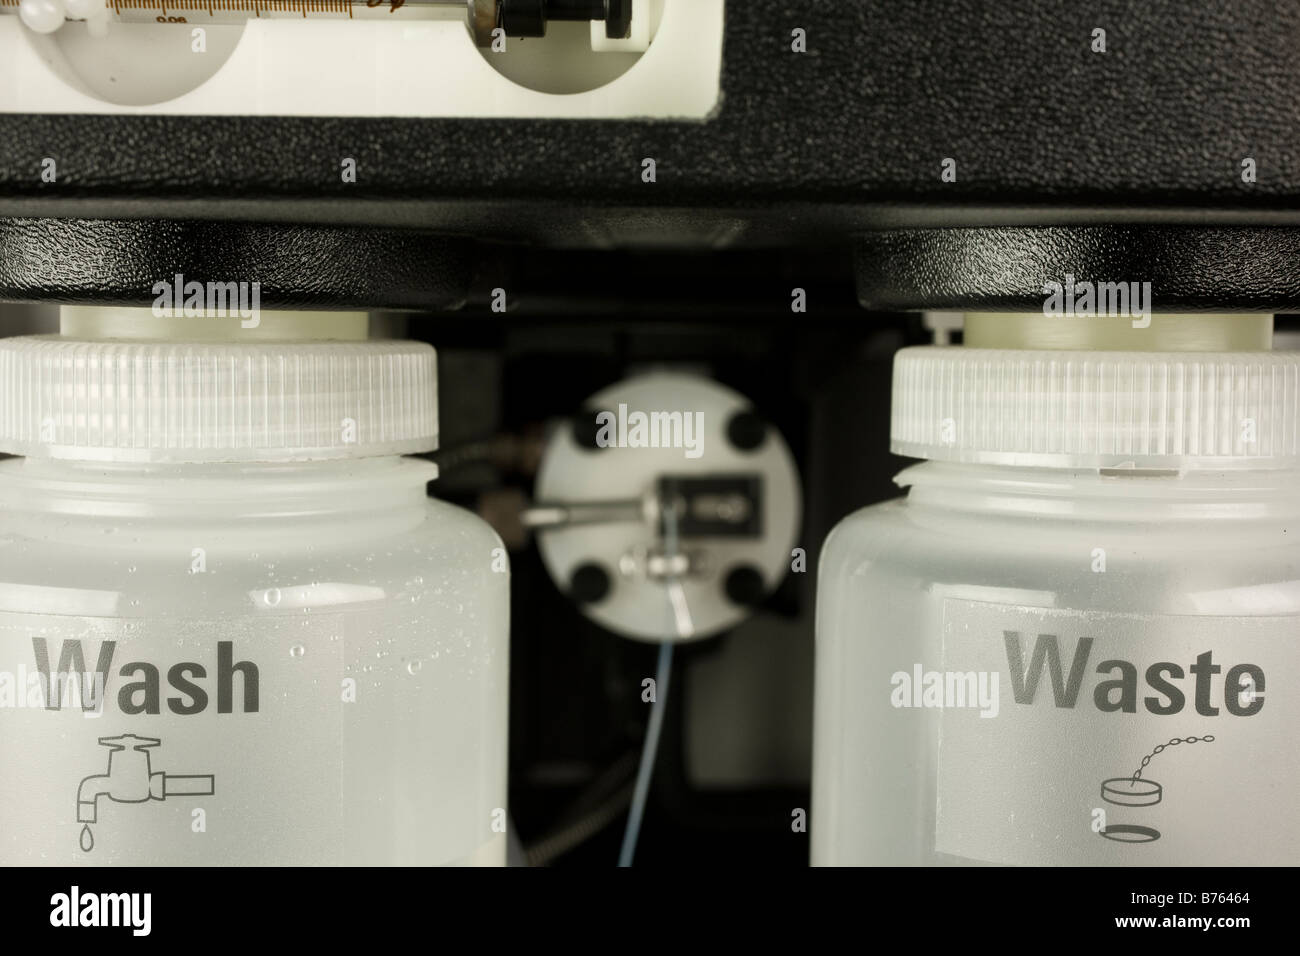 Wash and waste collection vessels for atomic absorption autosampler, Stock Photo